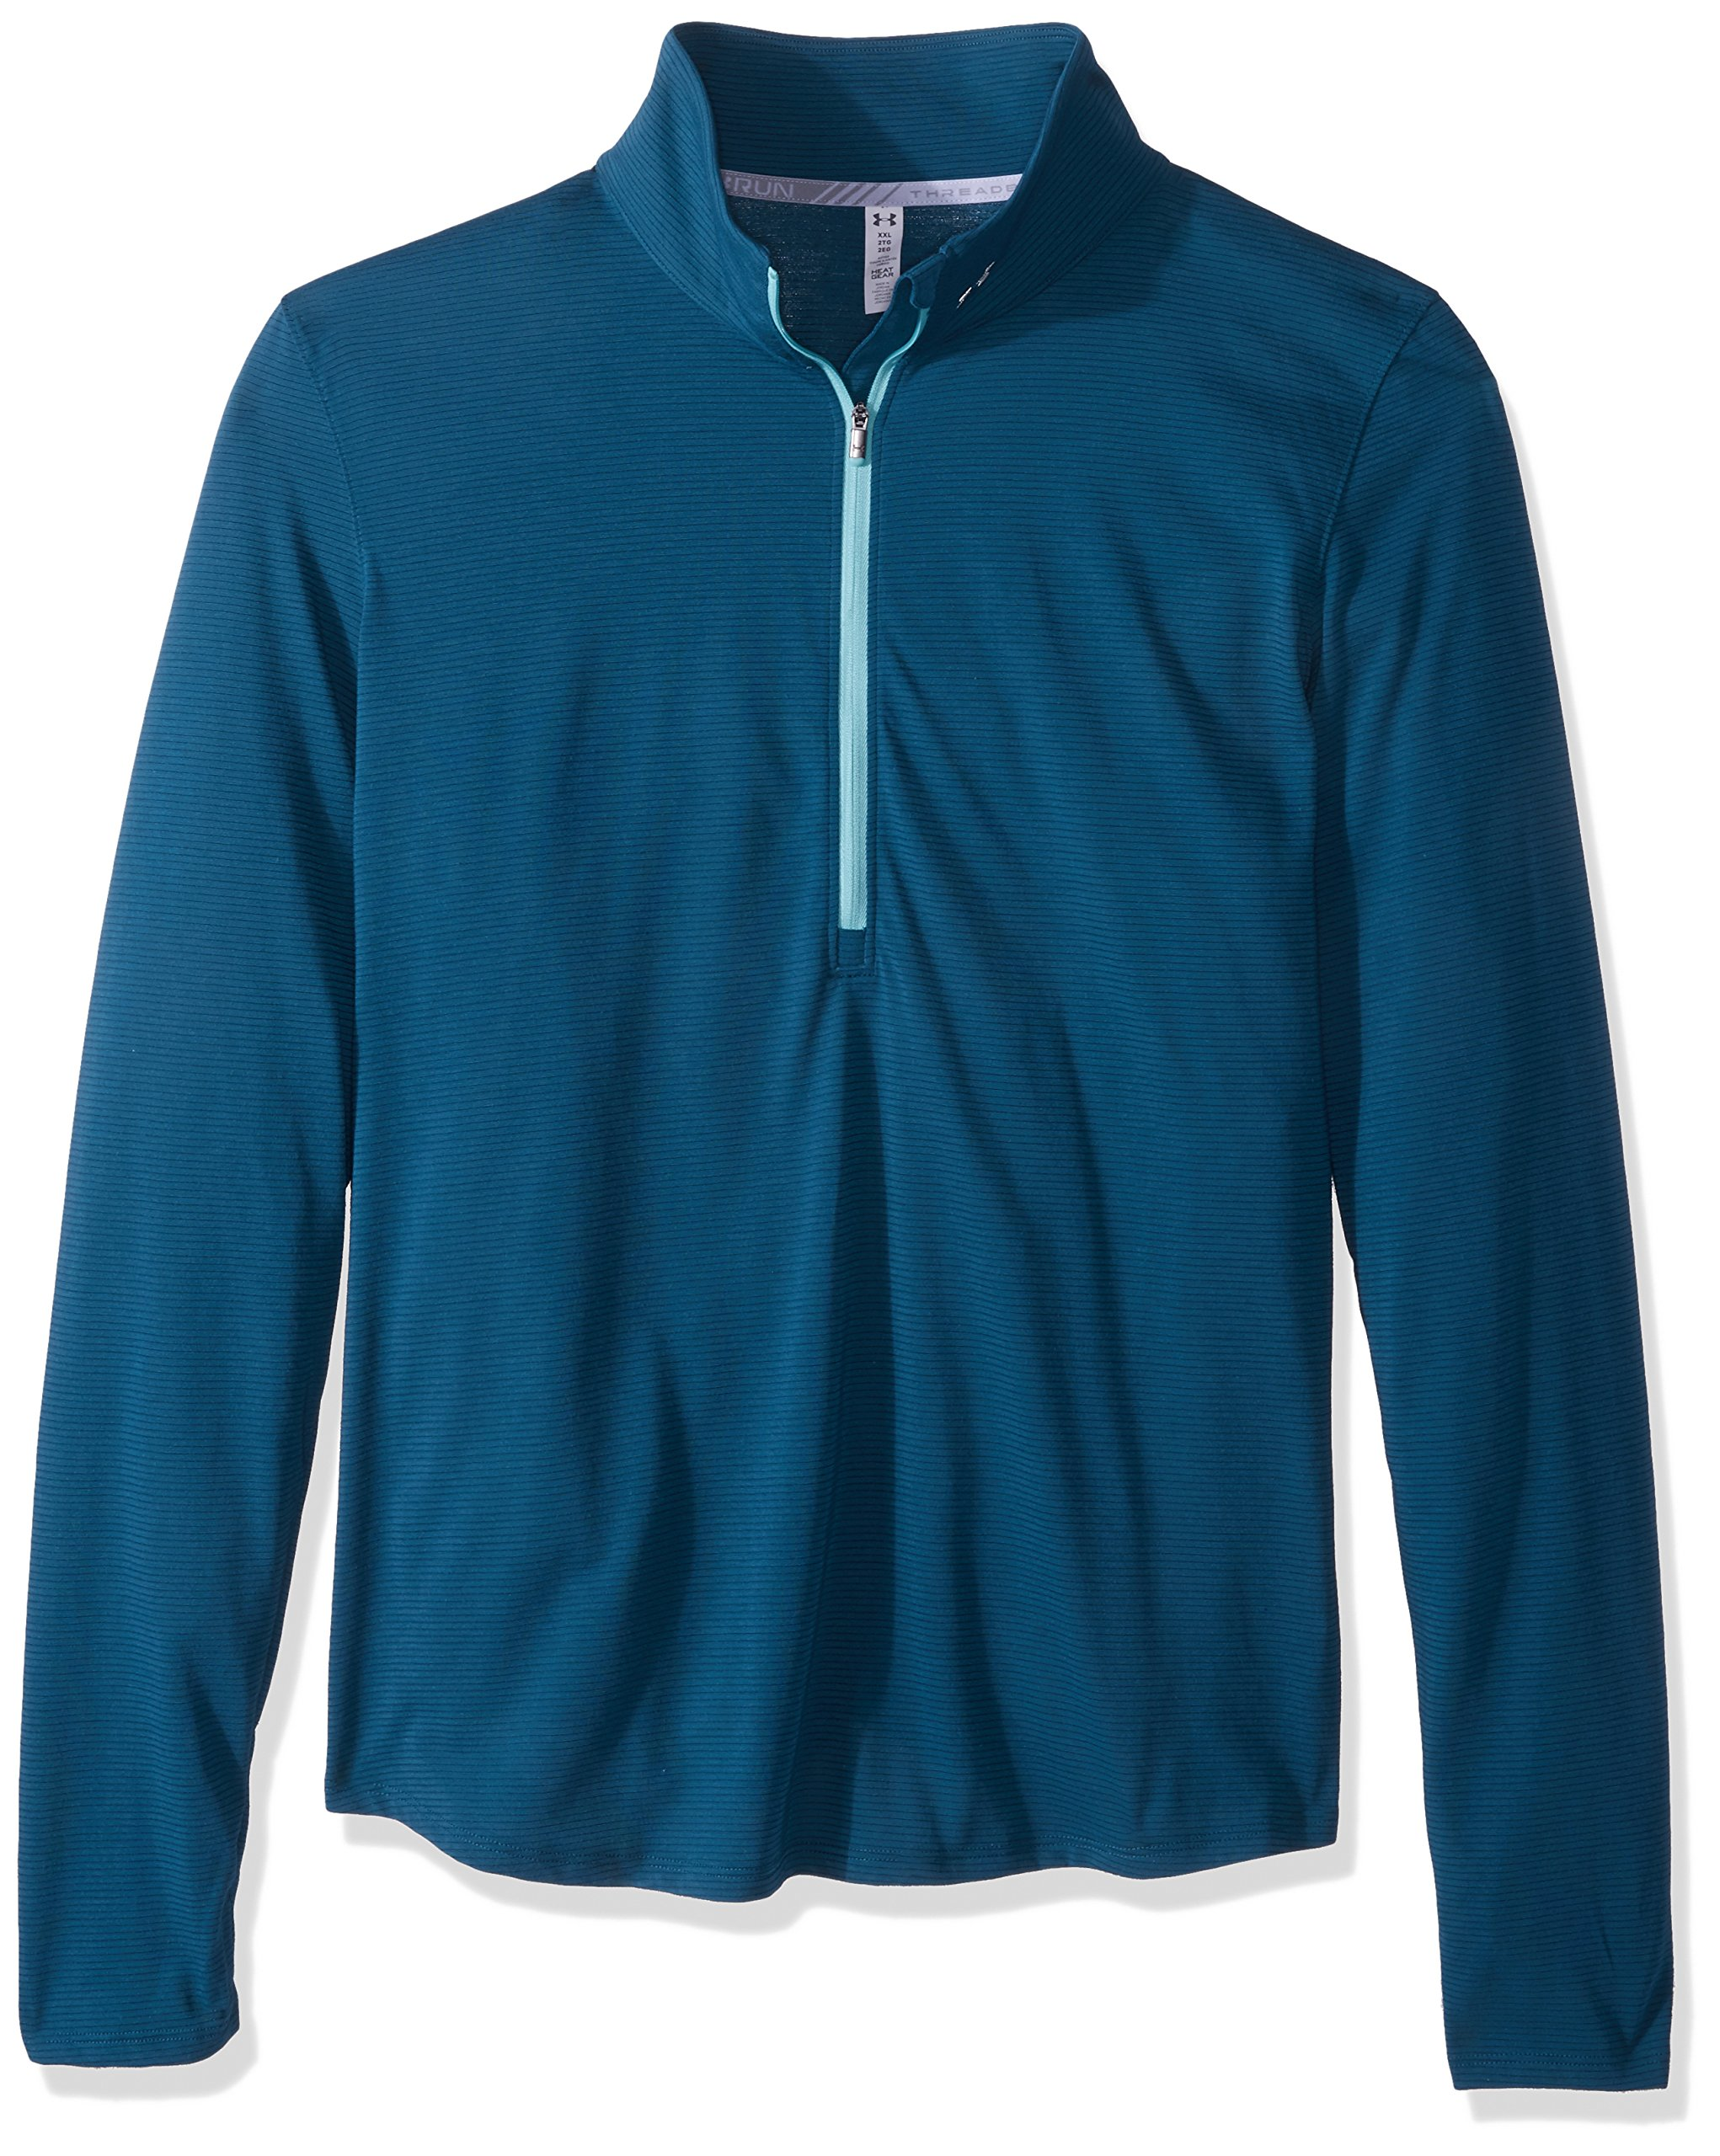 Under Armour Women's Streaker 1/2 Zip Top, Tourmaline Teal /Reflective, X-Large by Under Armour